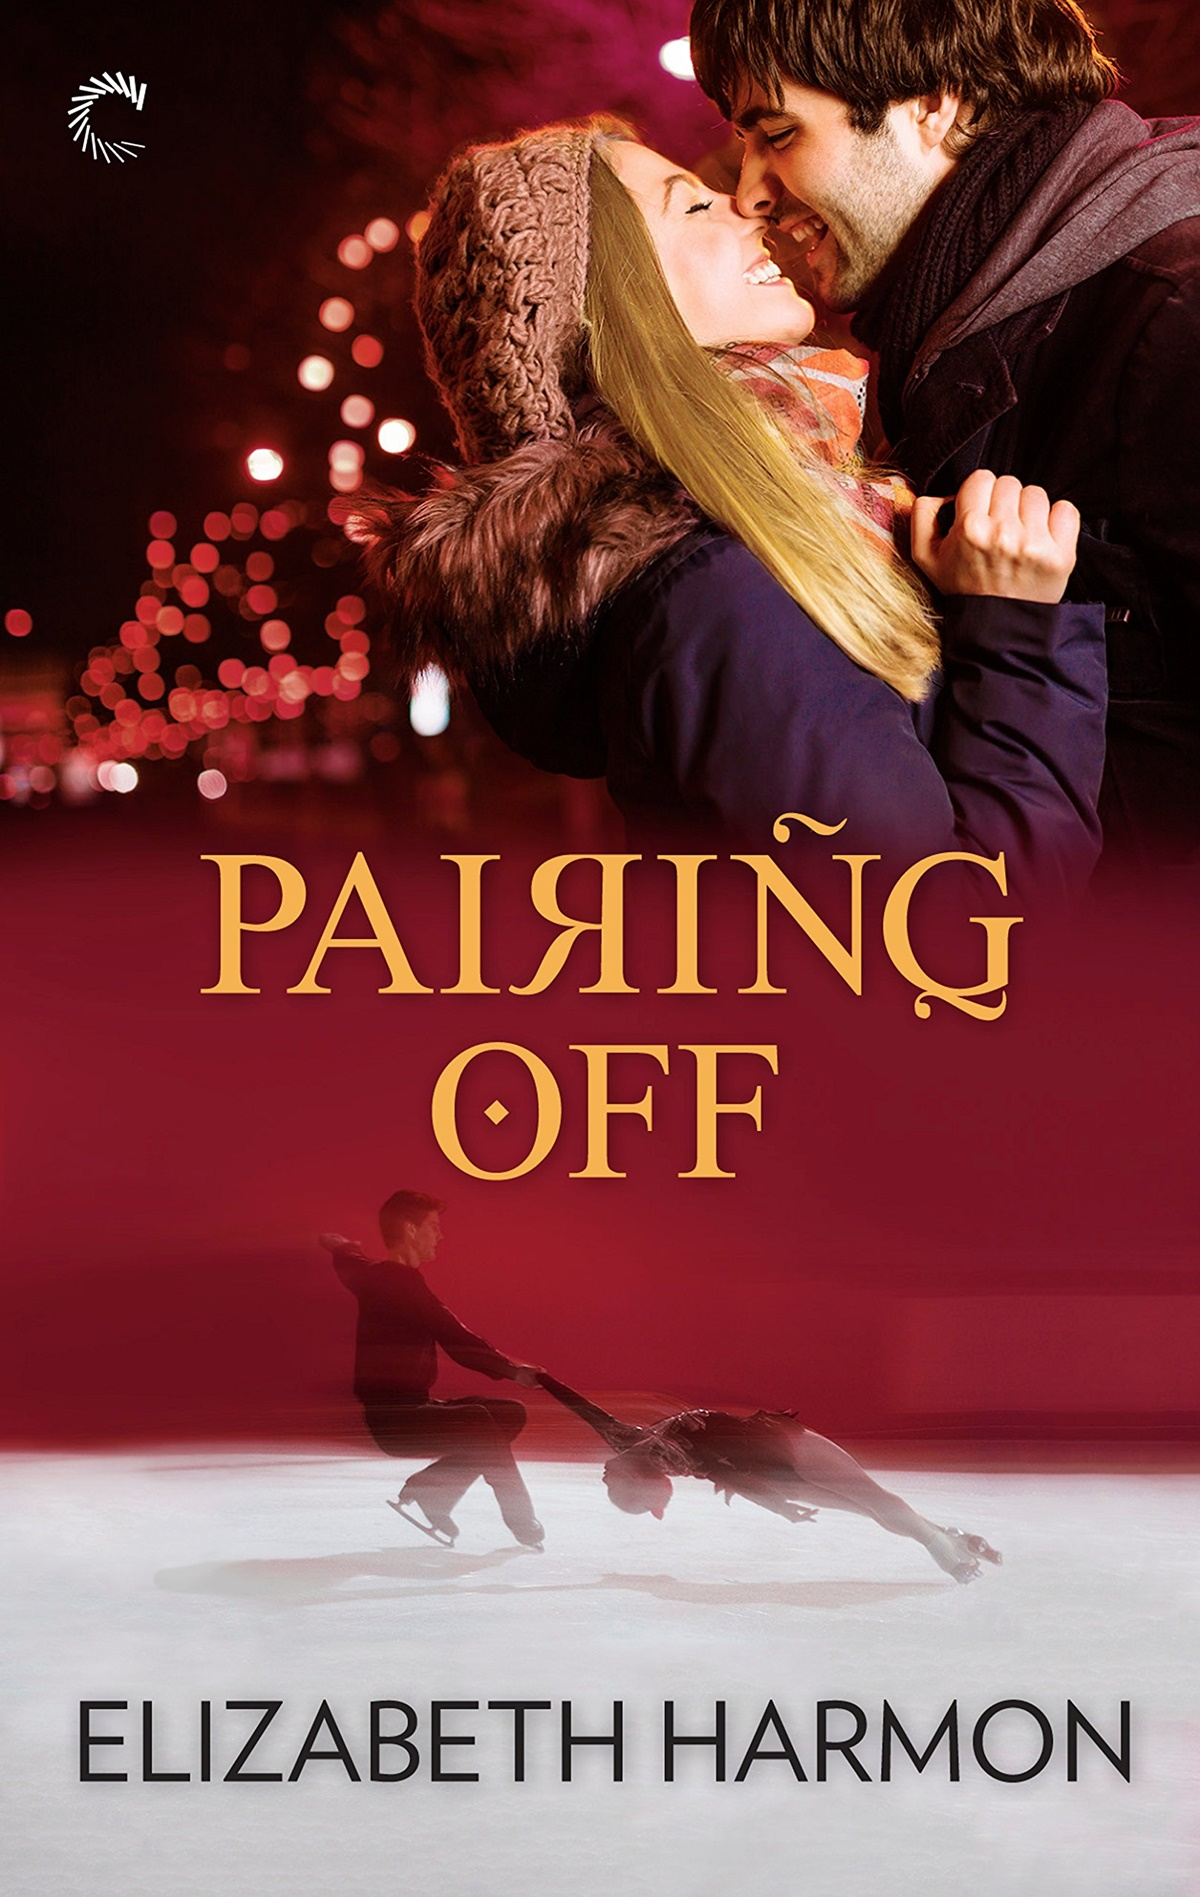 Sports Romance Novels, cover of Pairing Off Elizabeth Harmon, books